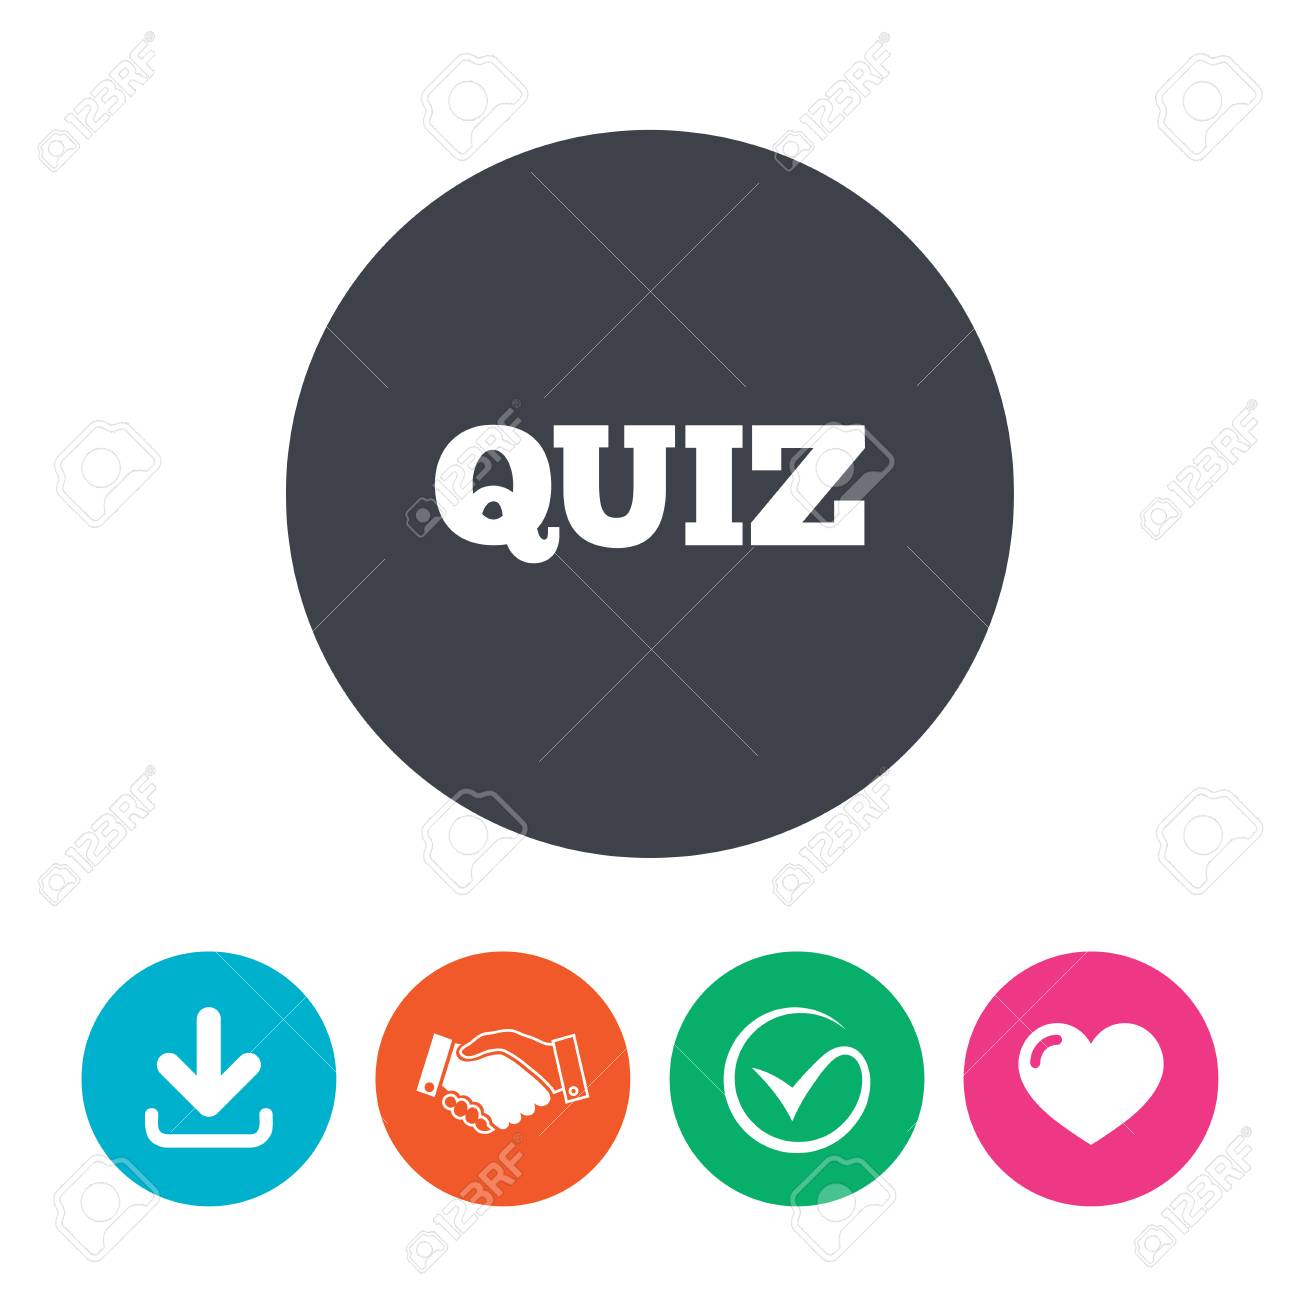 Quiz sign icon questions and answers game symbol download arrow questions and answers game symbol download arrow handshake tick ccuart Image collections